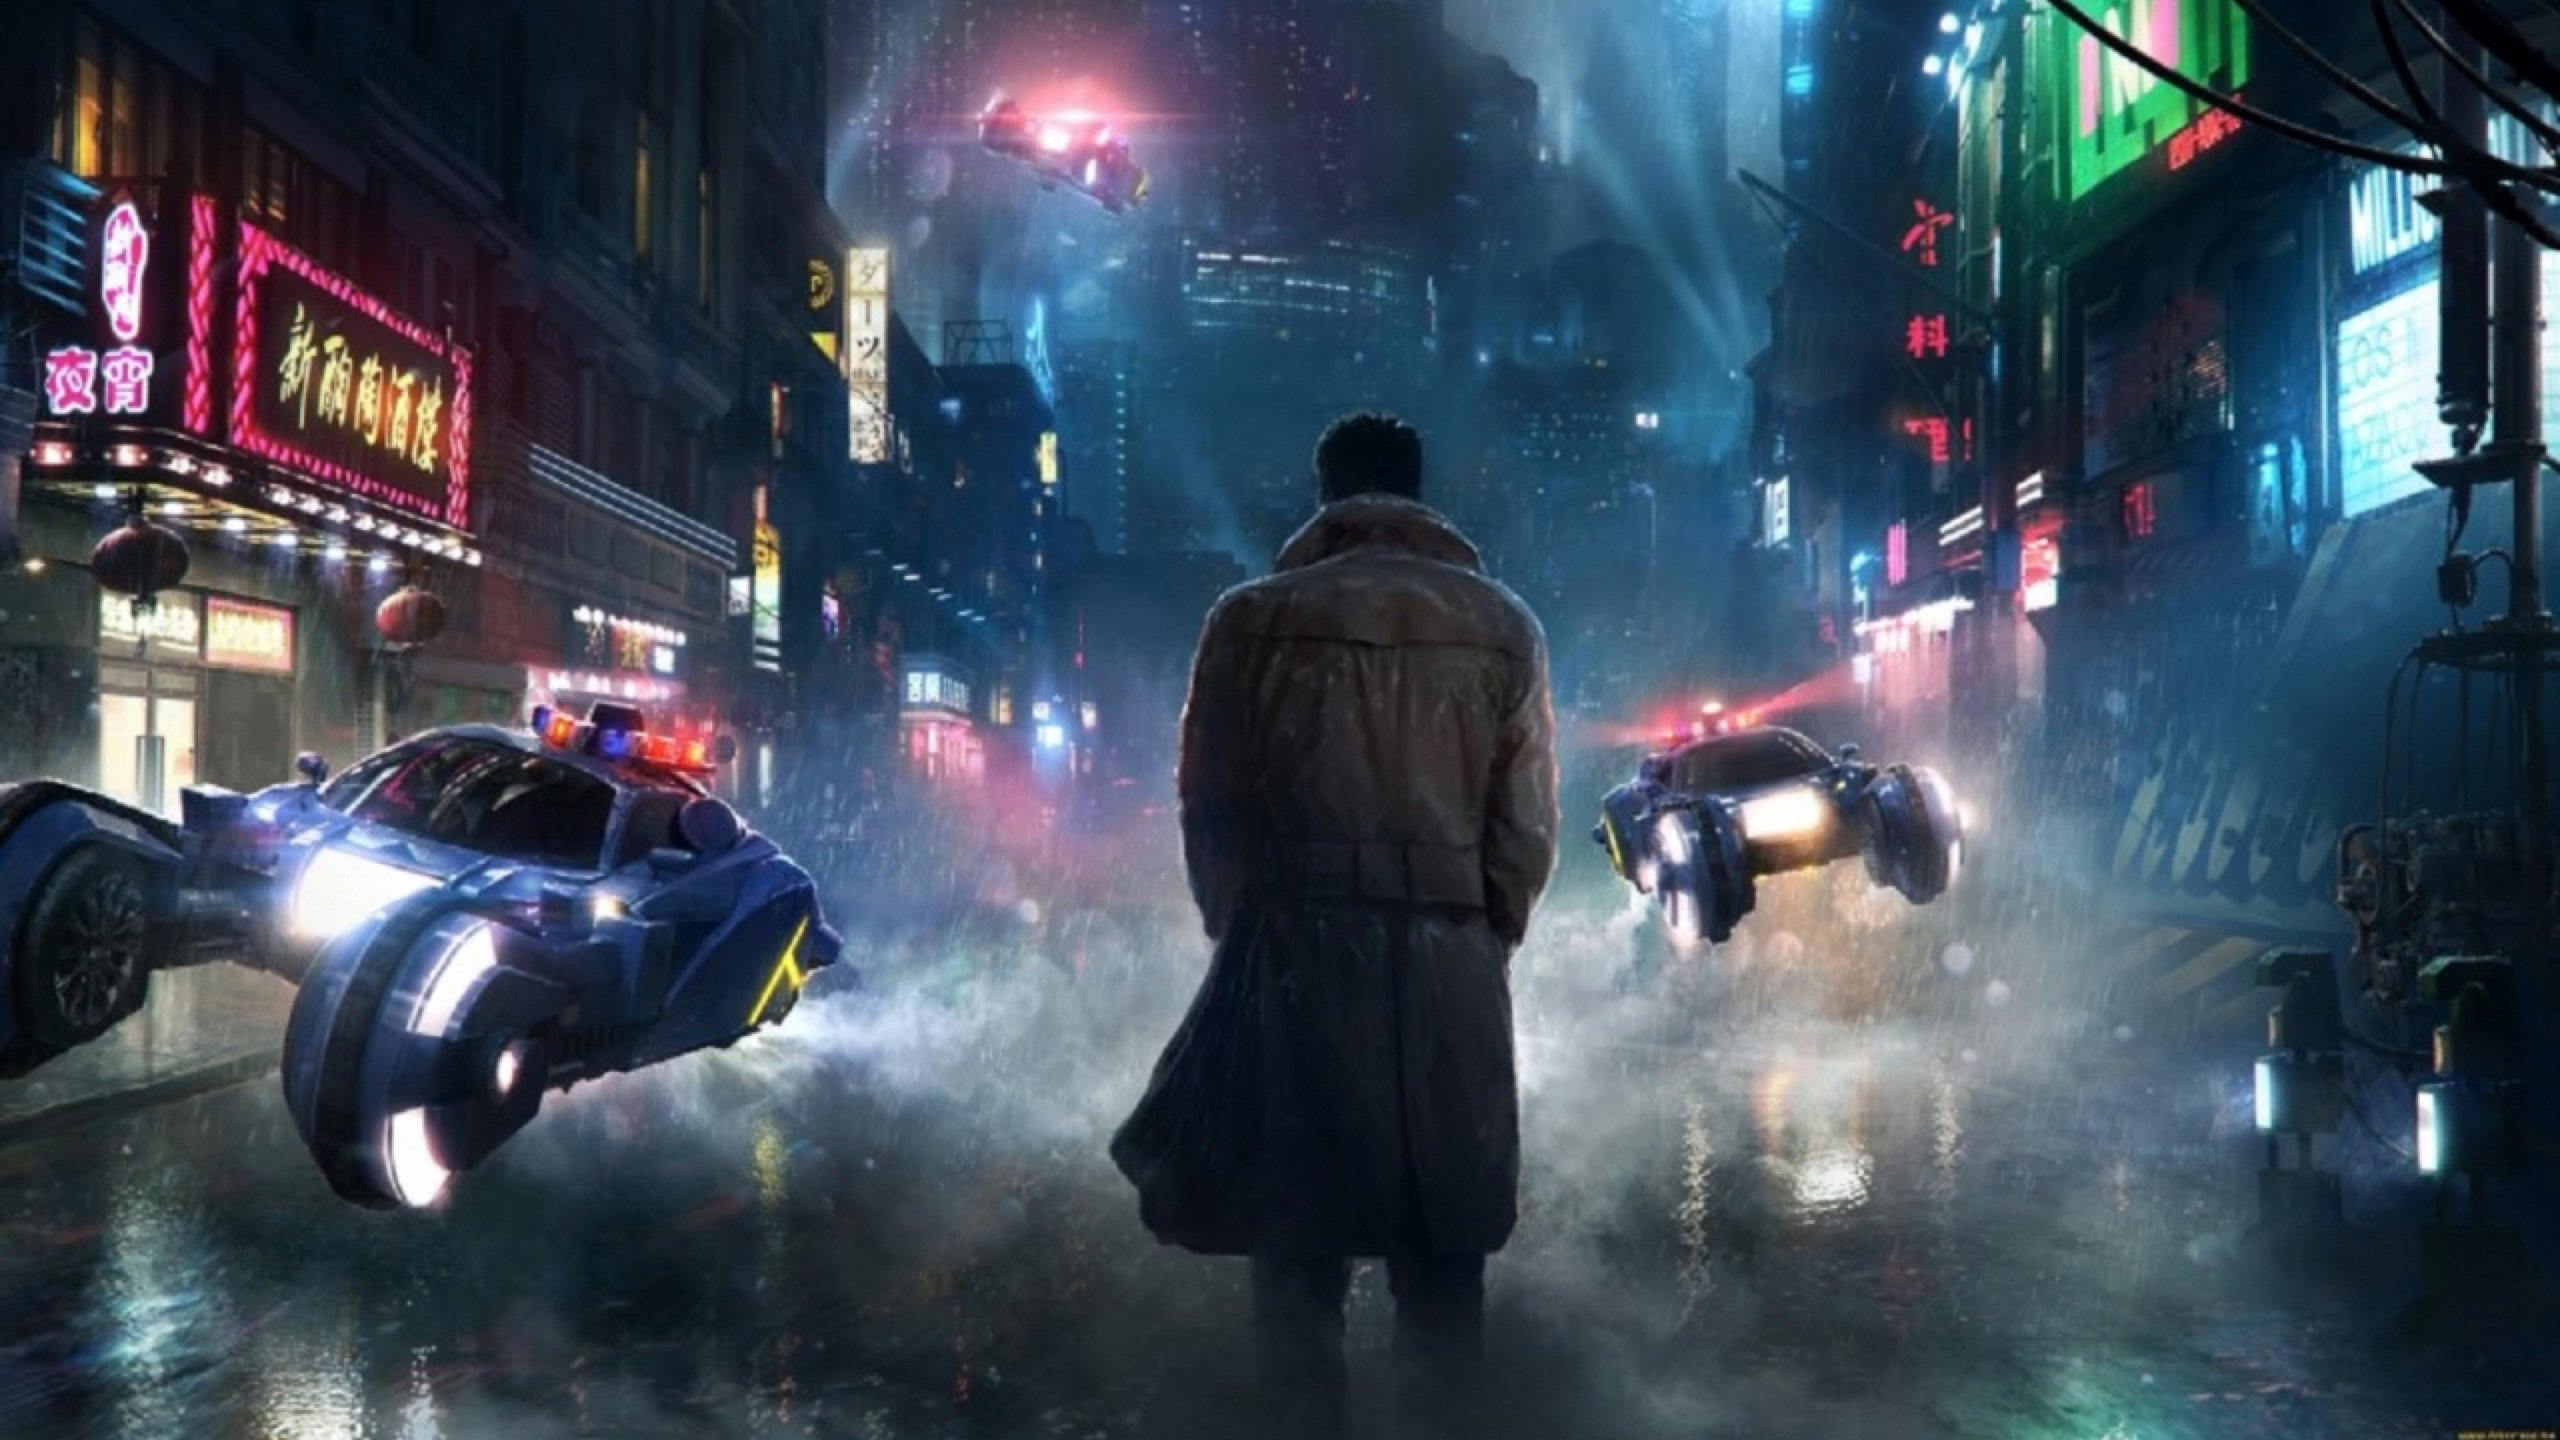 Watch the 'Blade Runner 2049' trailer compared to the original